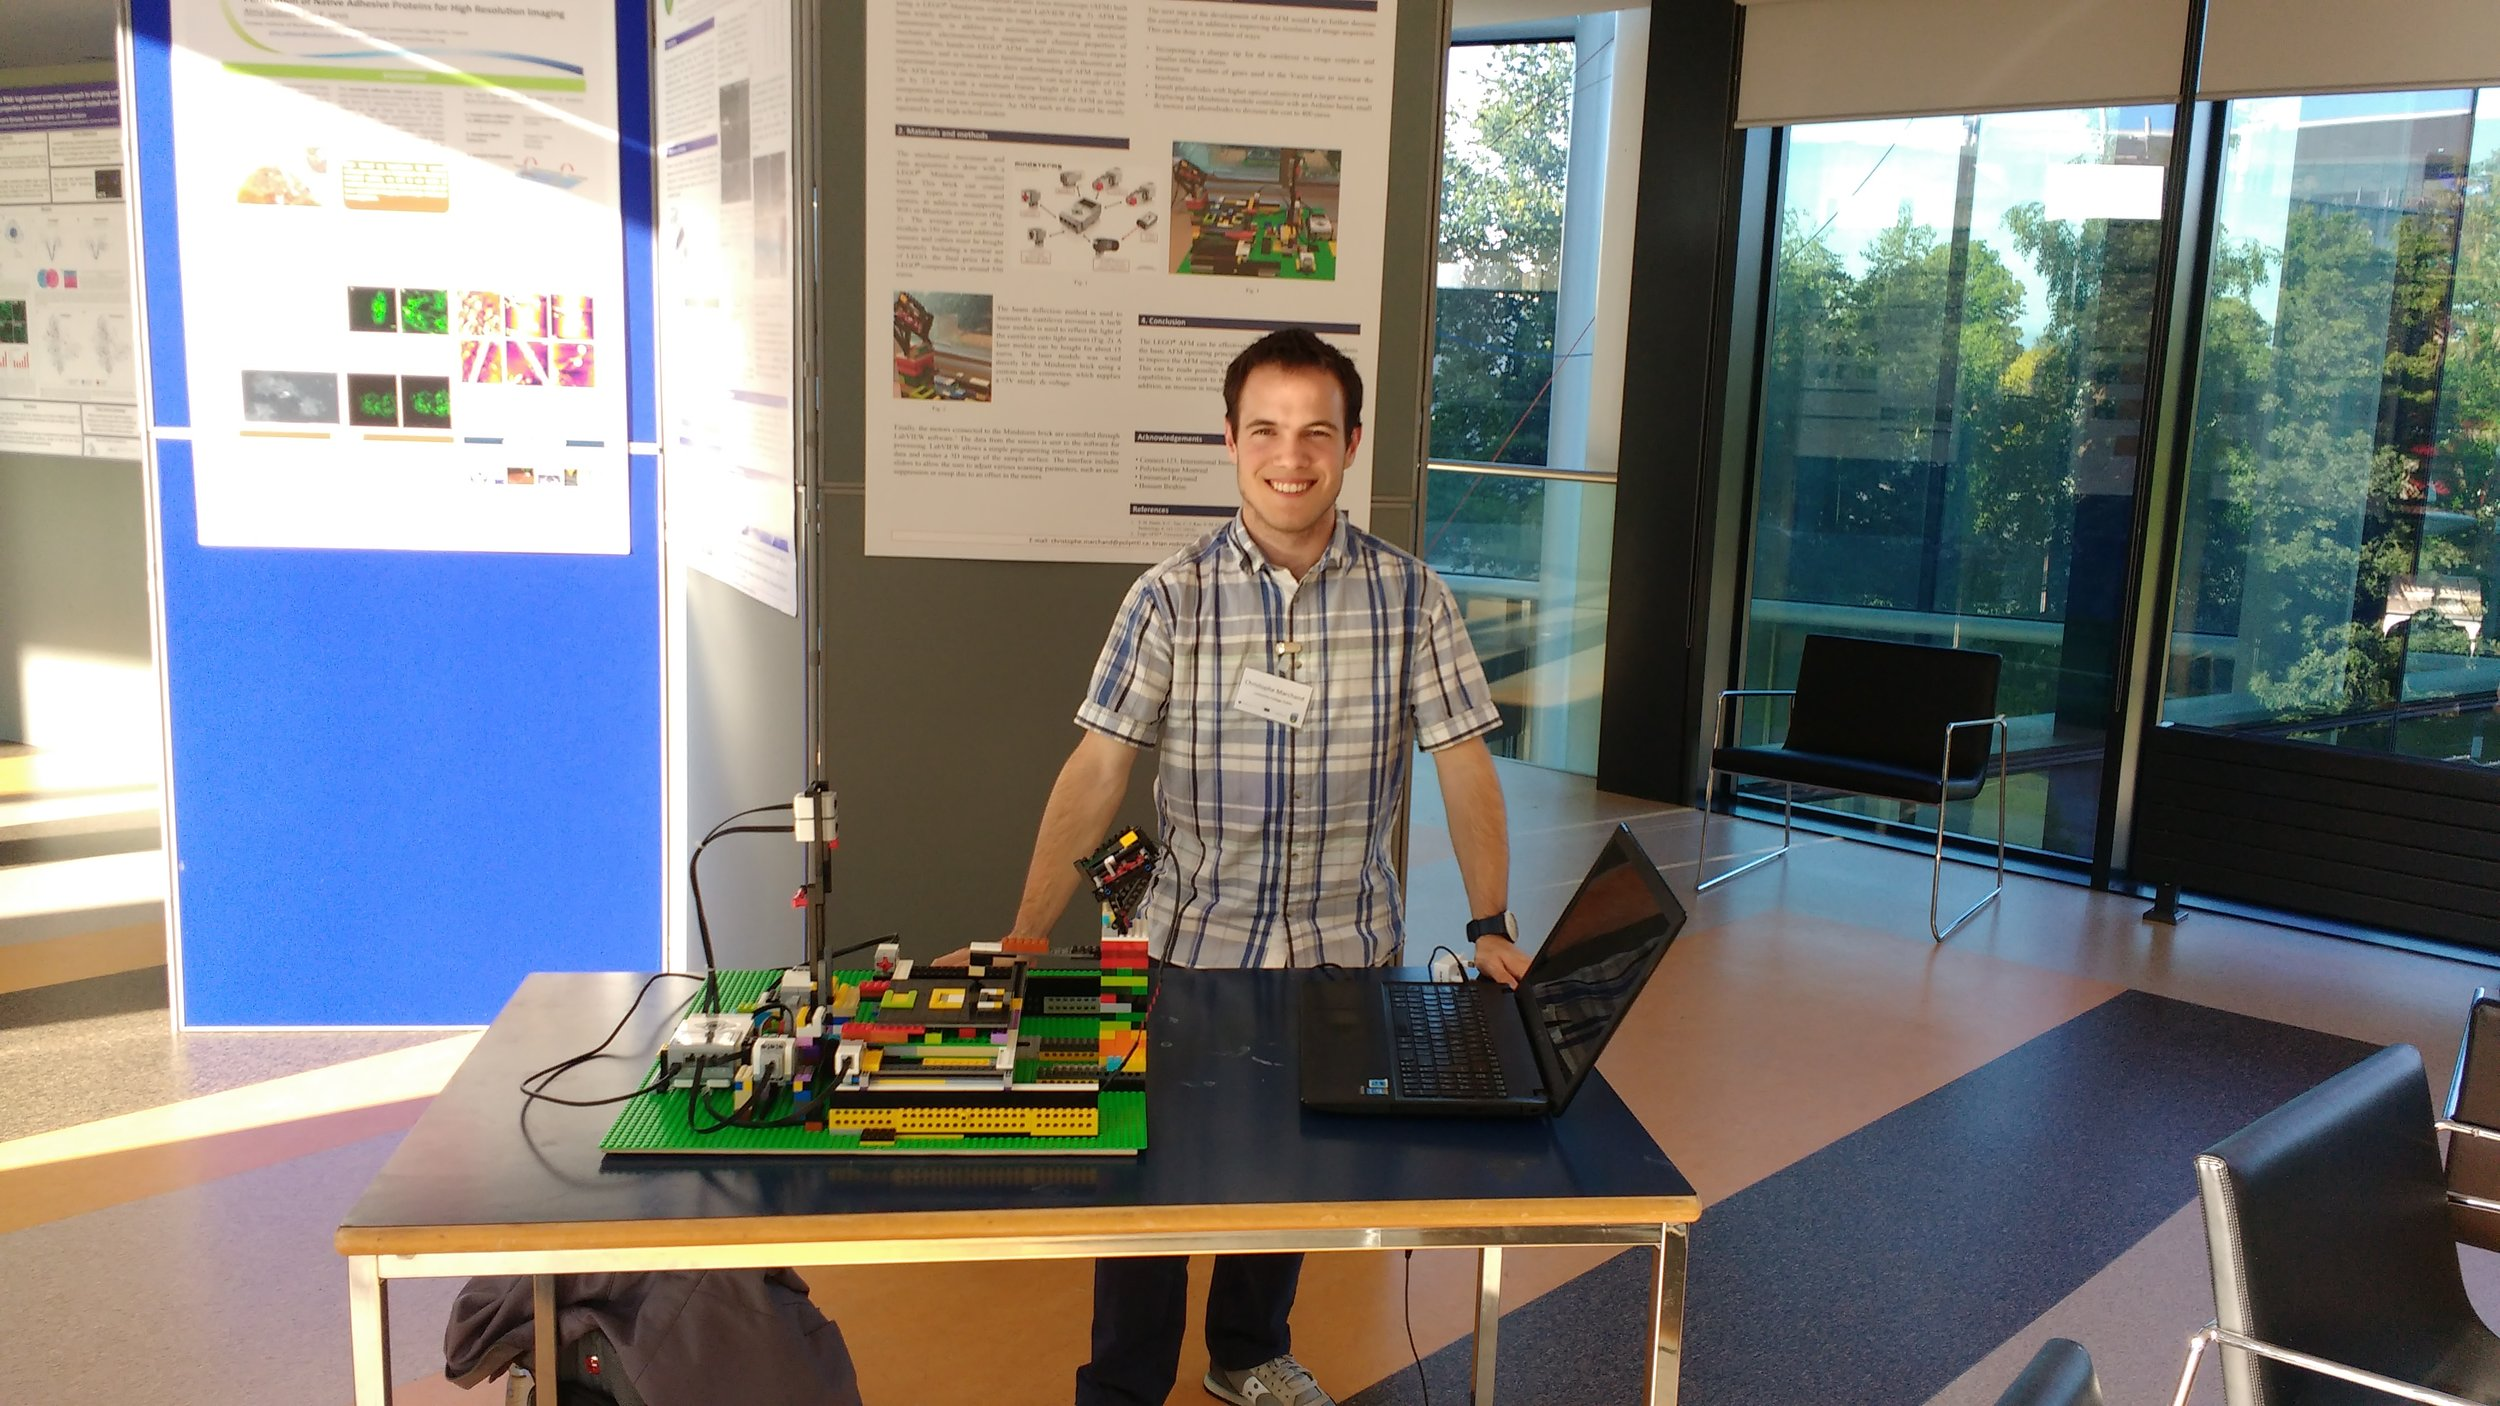 Christophe Marchand and his LEGO AFM